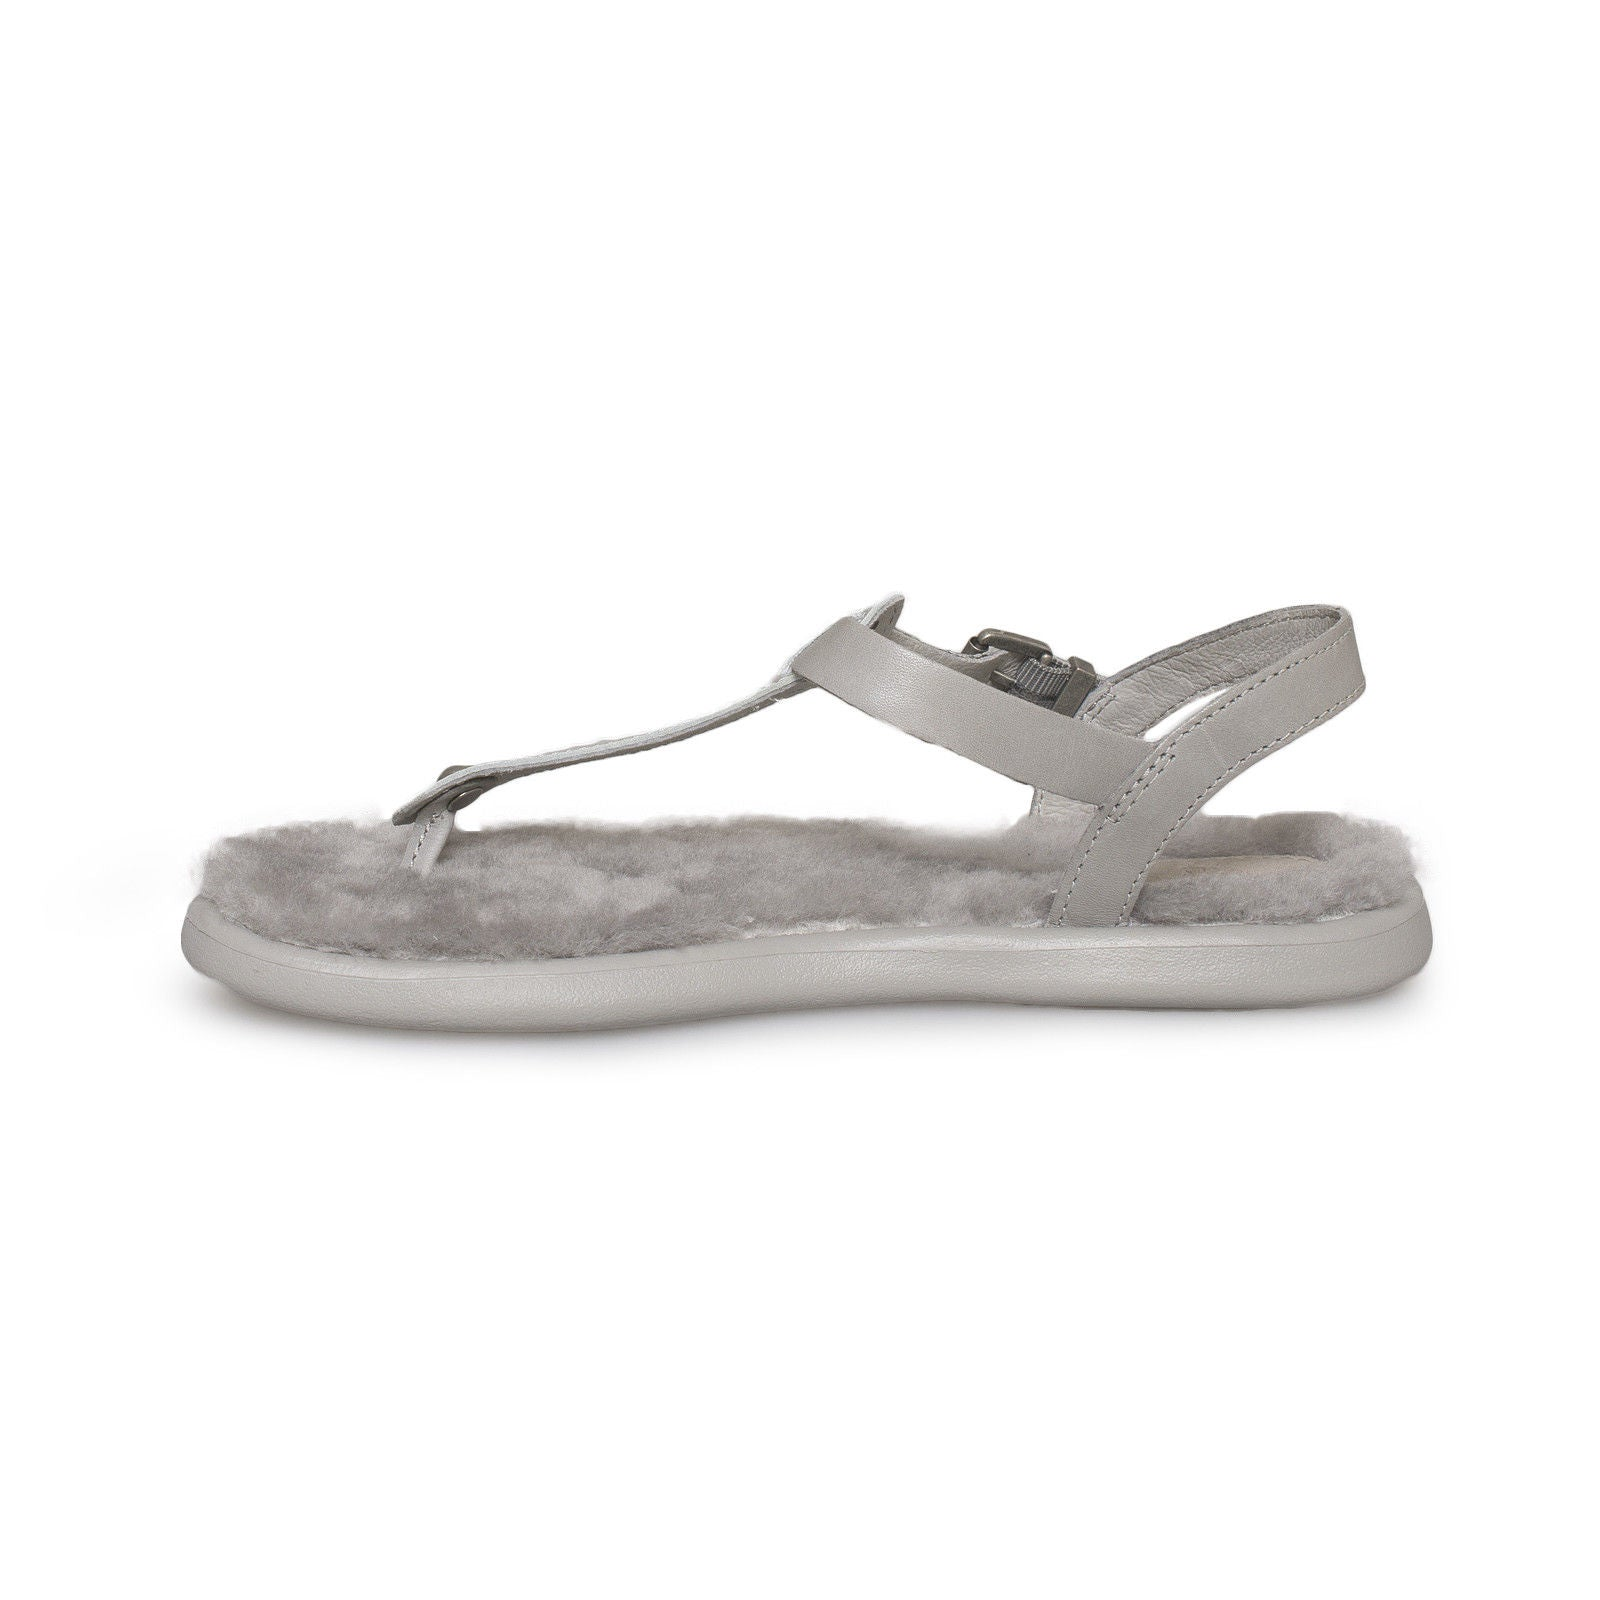 332d37cee59 UGG Lou Lou Sterling Sandals